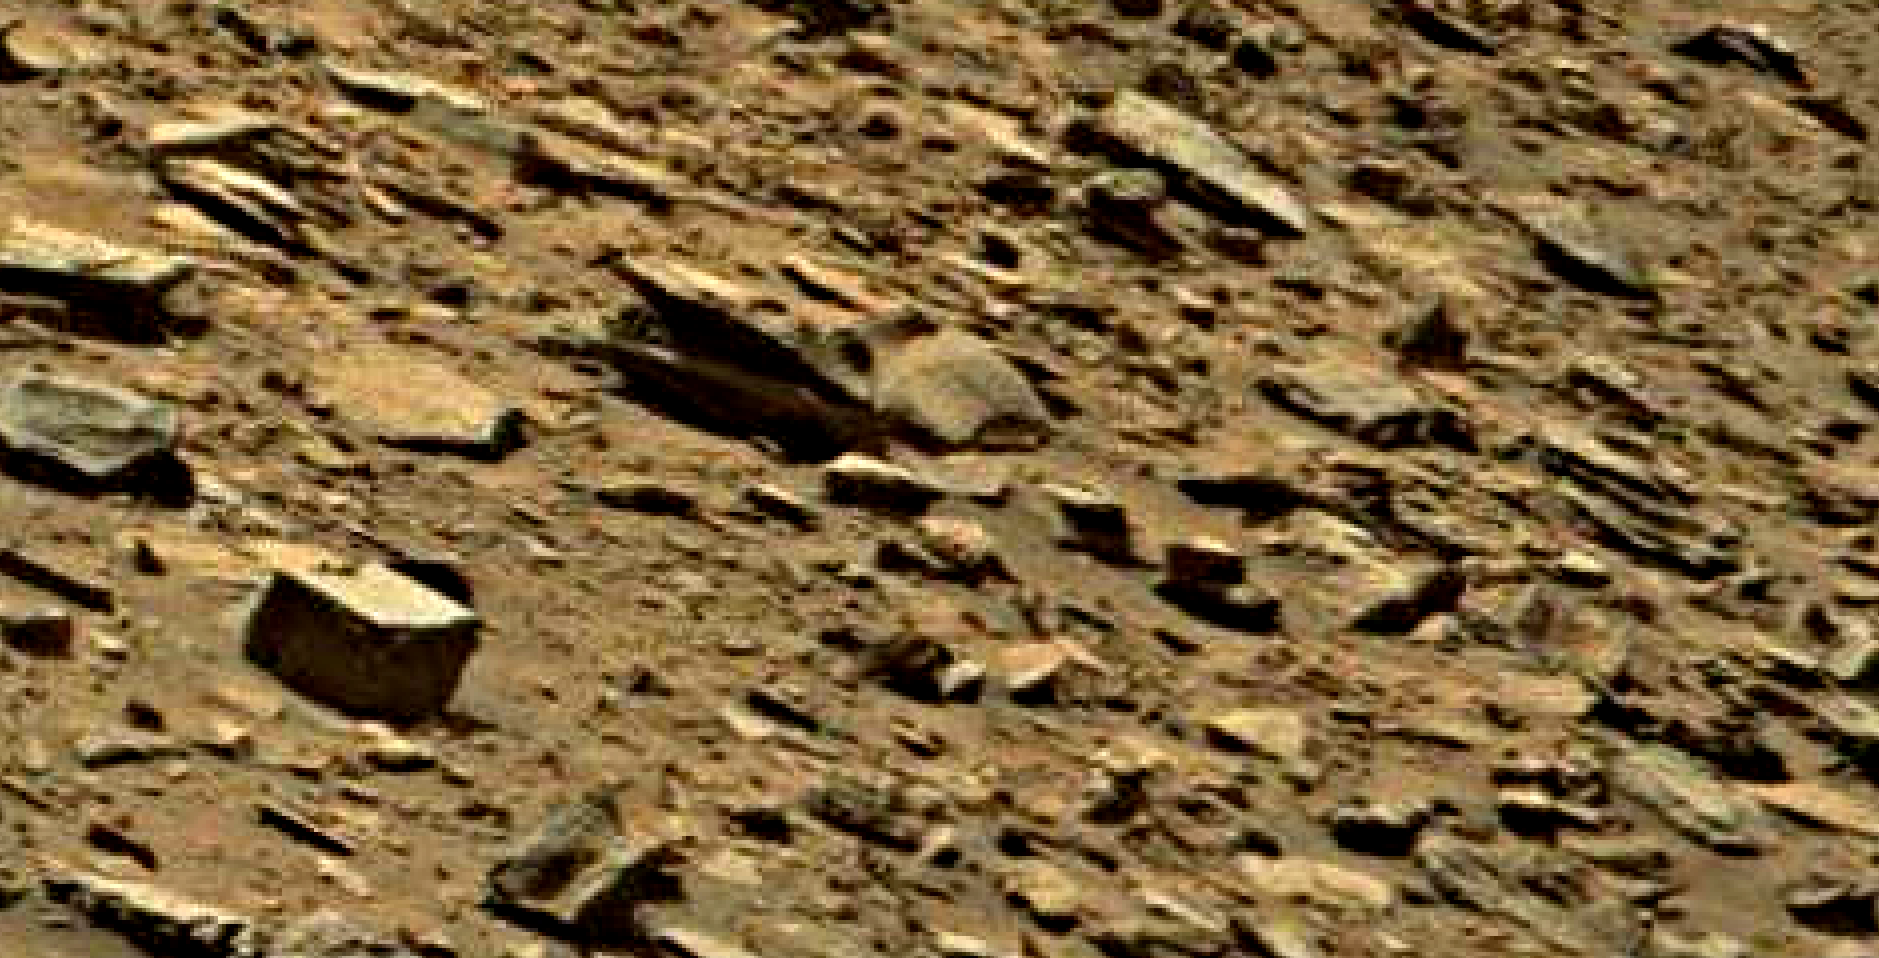 mars sol 1434 anomaly artifacts 5 was life on mars